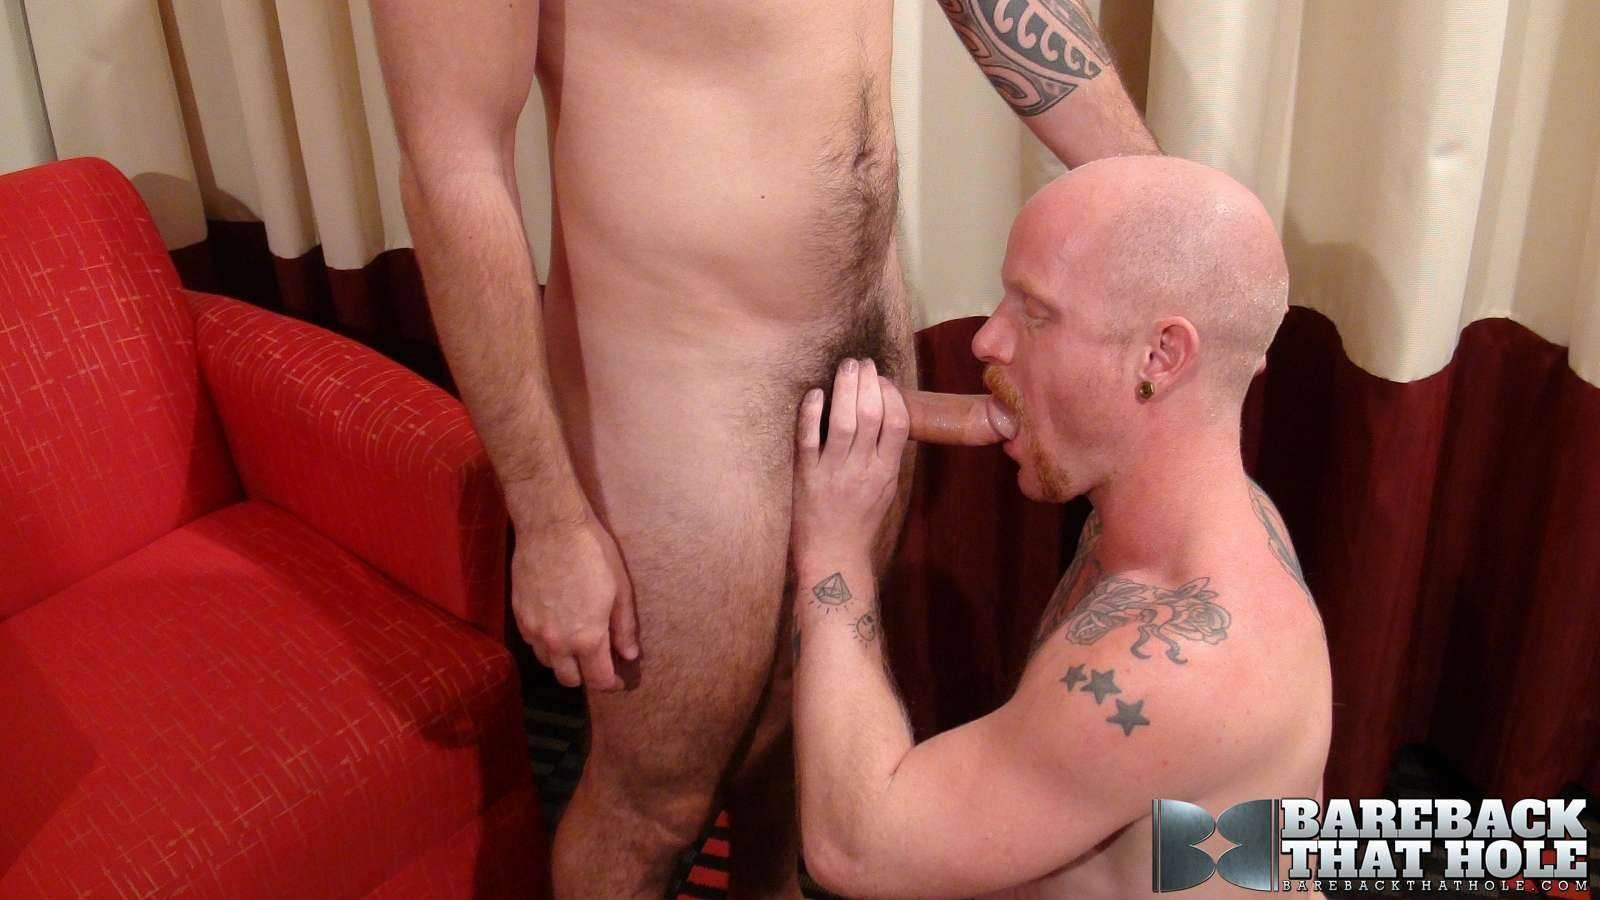 Bareback-That-Hole-Cam-Christou-and-Brock-Rustin-Redhead-Ginger-Gets-Barebacked-By-A-Big-Cock-Amateur-Gay-Porn-01 Redhead Ginger Brock Rustin Taking A Huge Bareback Load